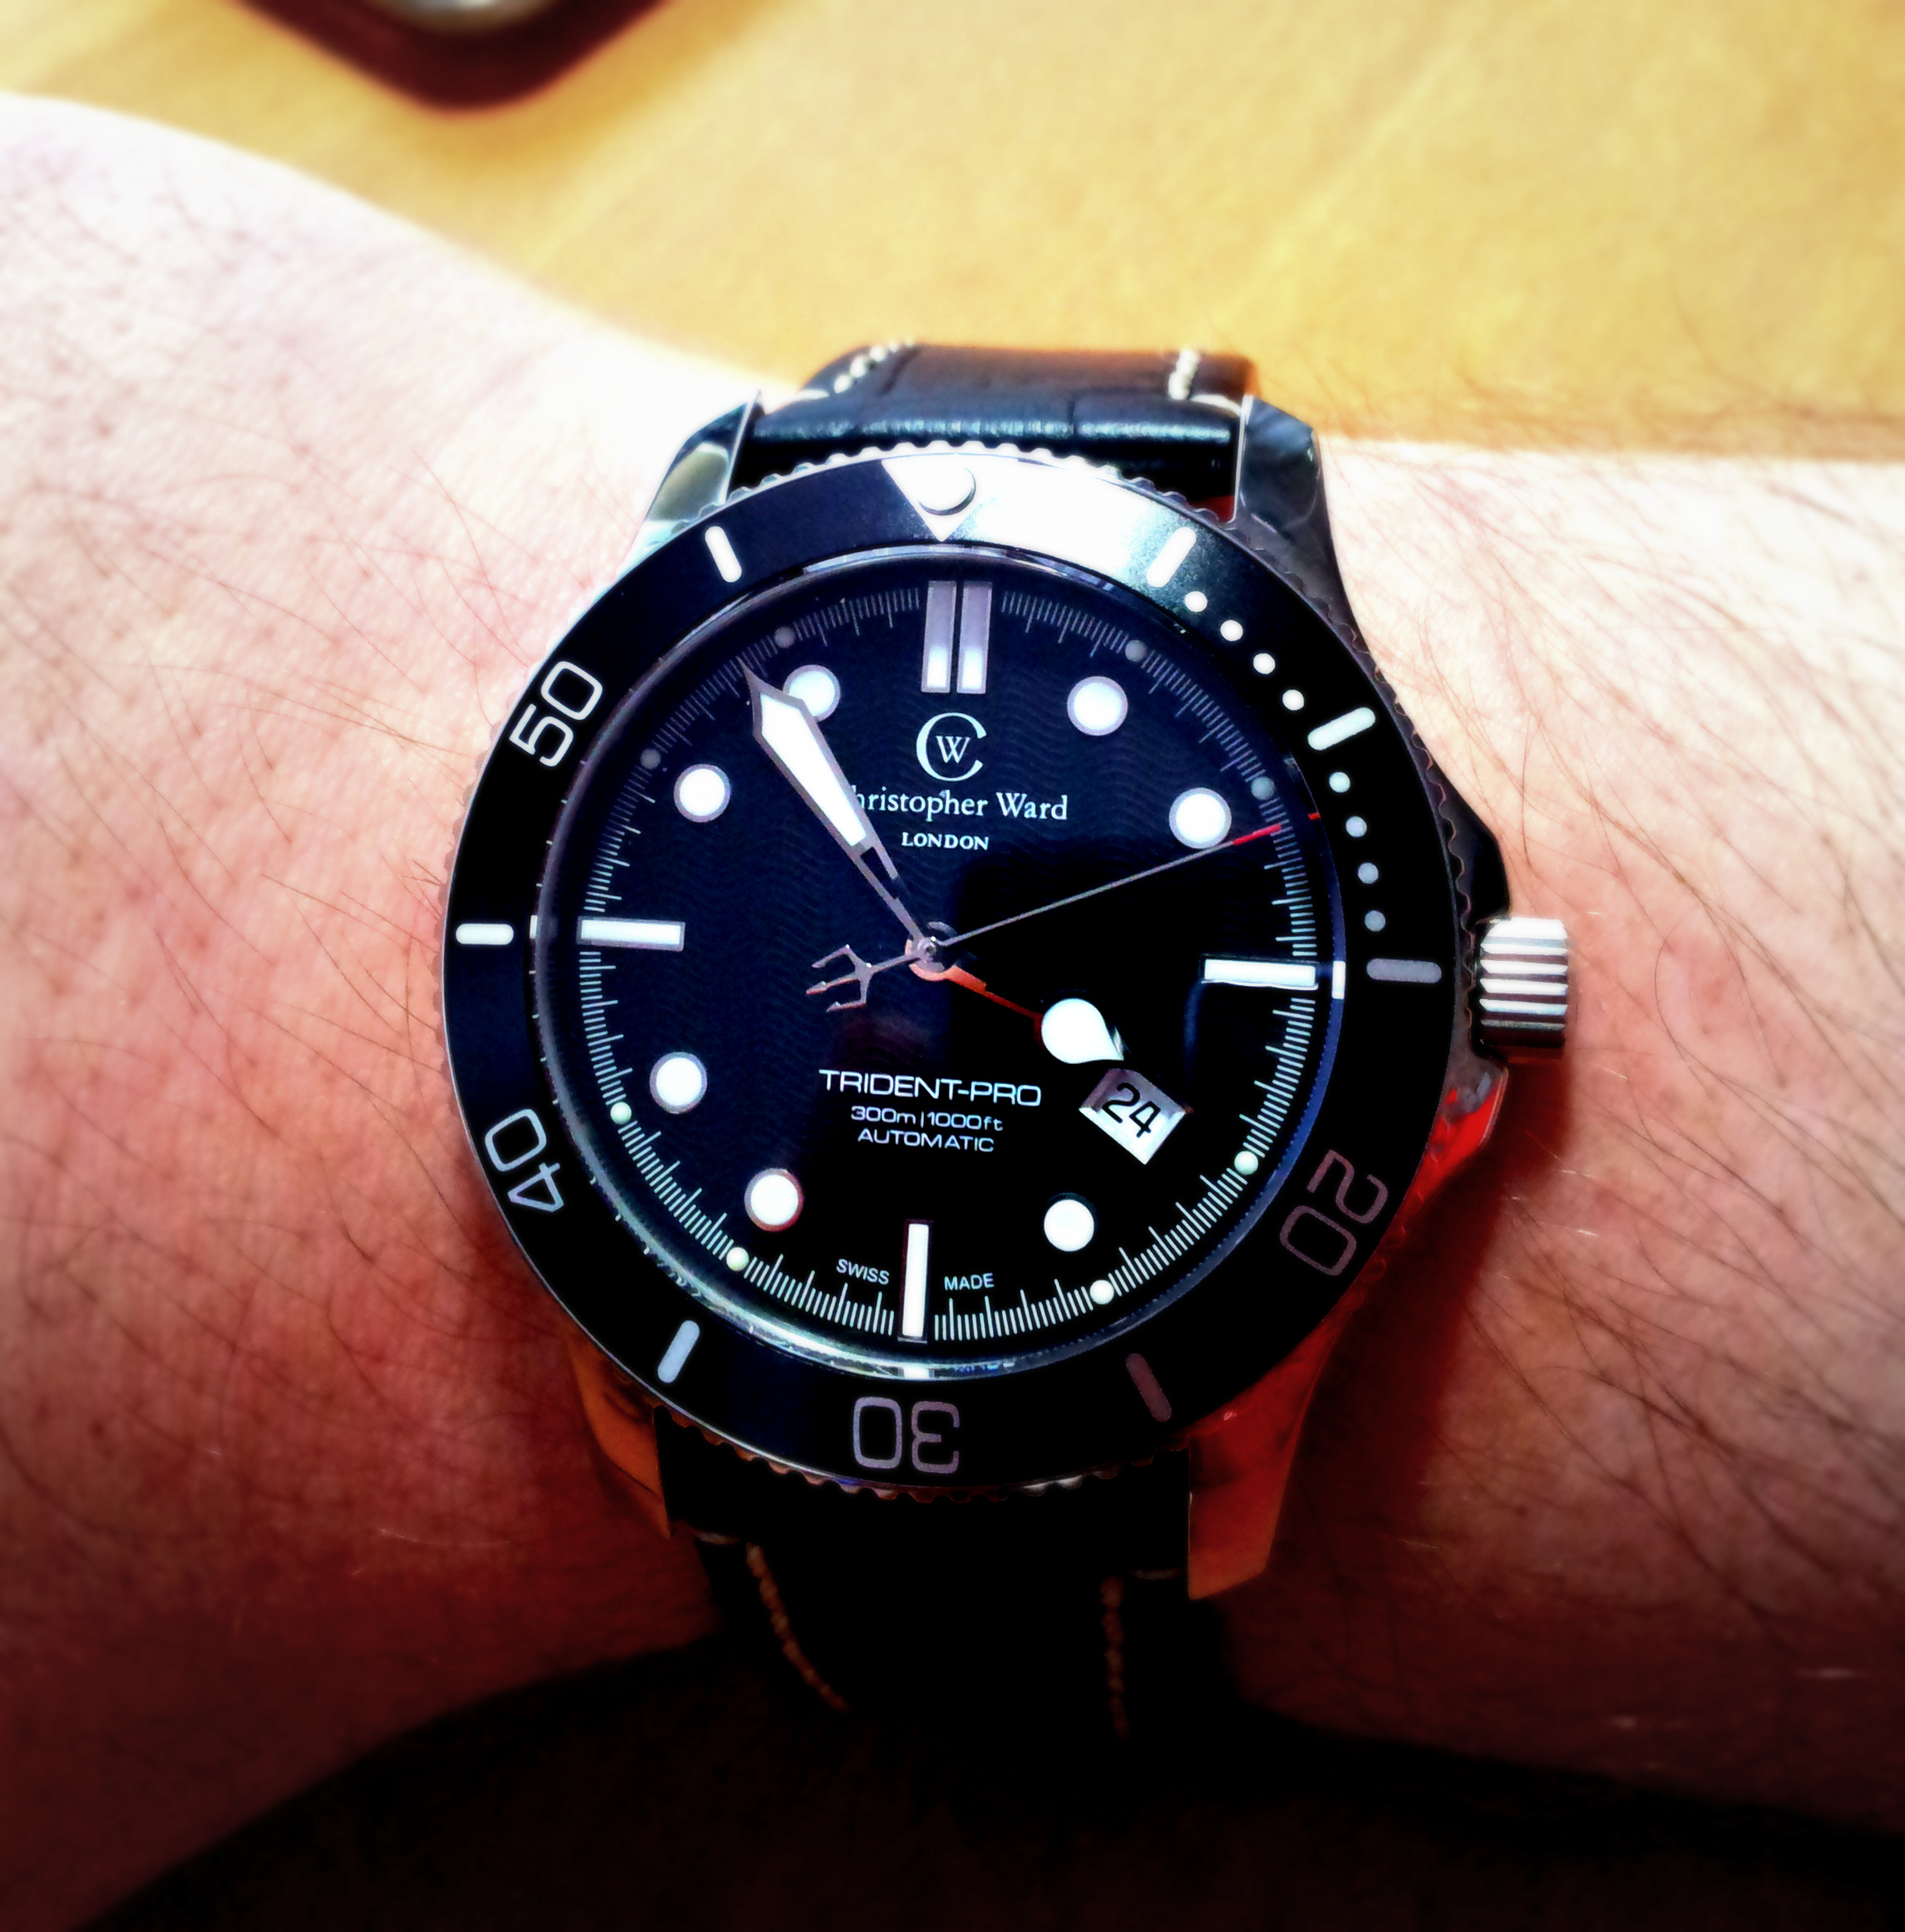 20120224 155416 001 Christopher Ward Kingfisher Diver Pro review